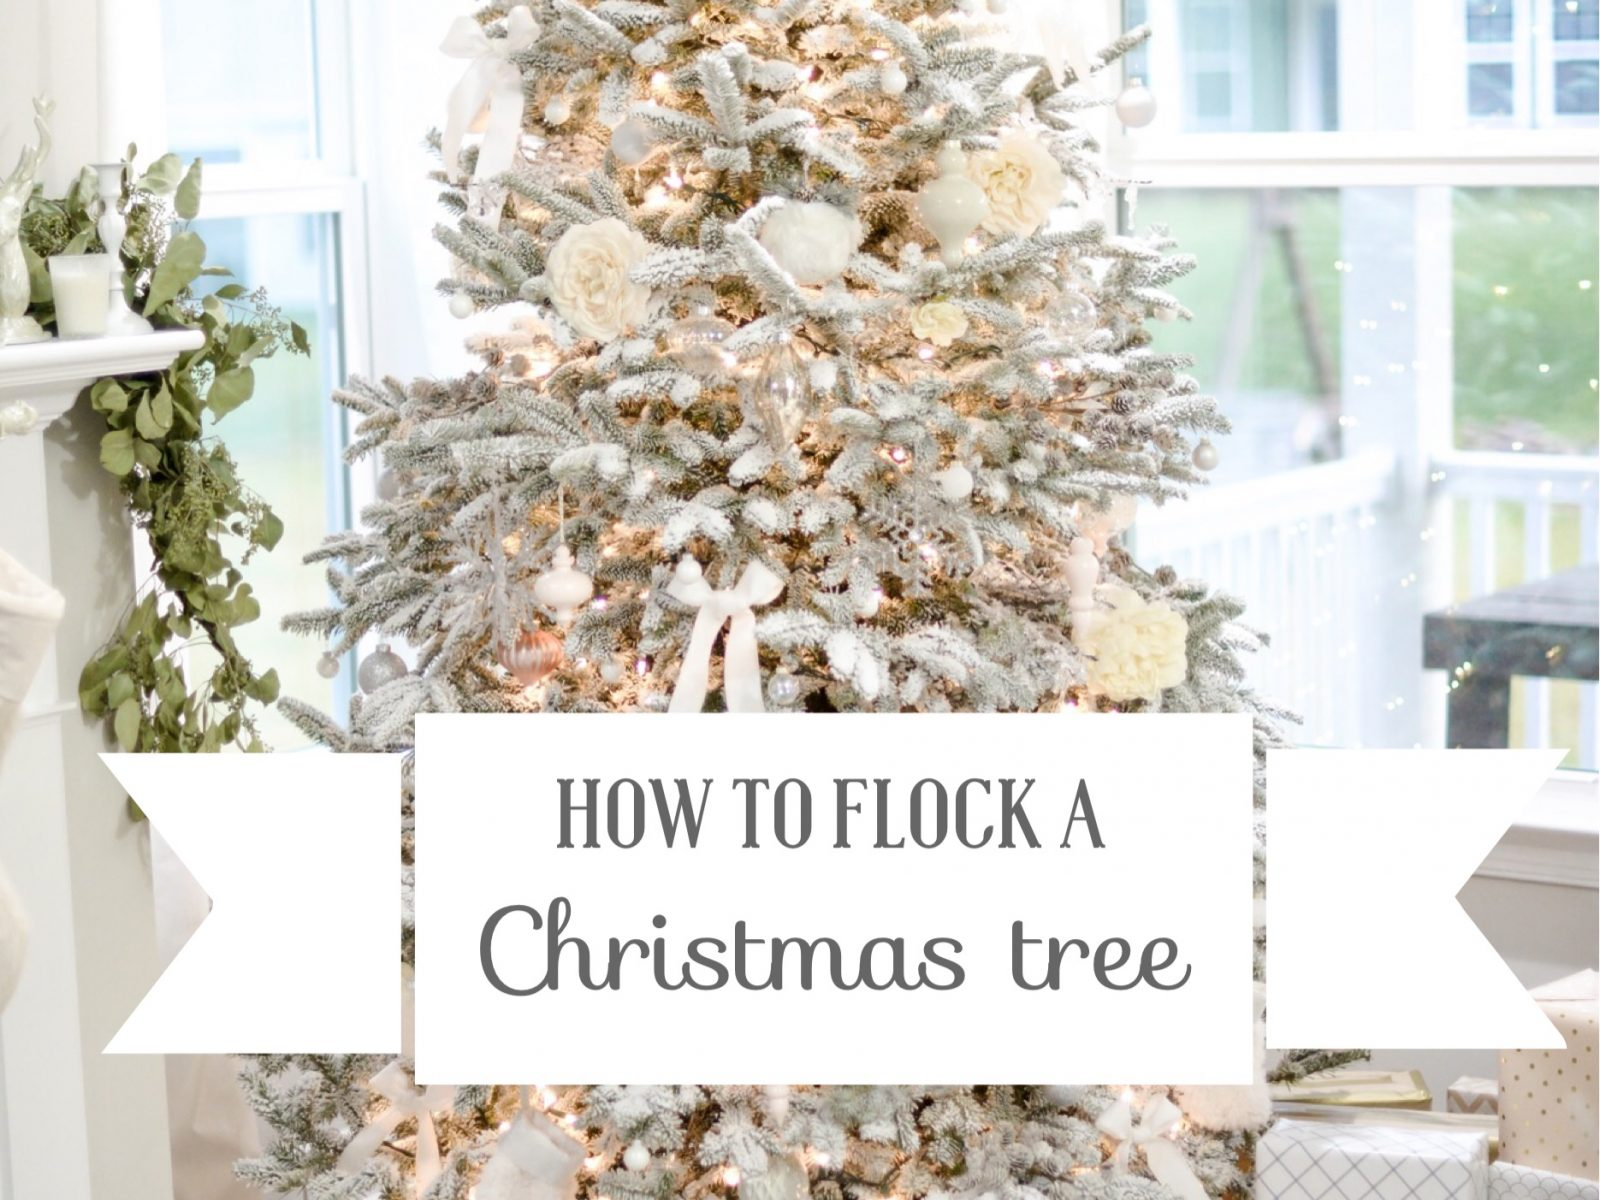 How to Flock a Christmas Tree | Easy DIY Steps